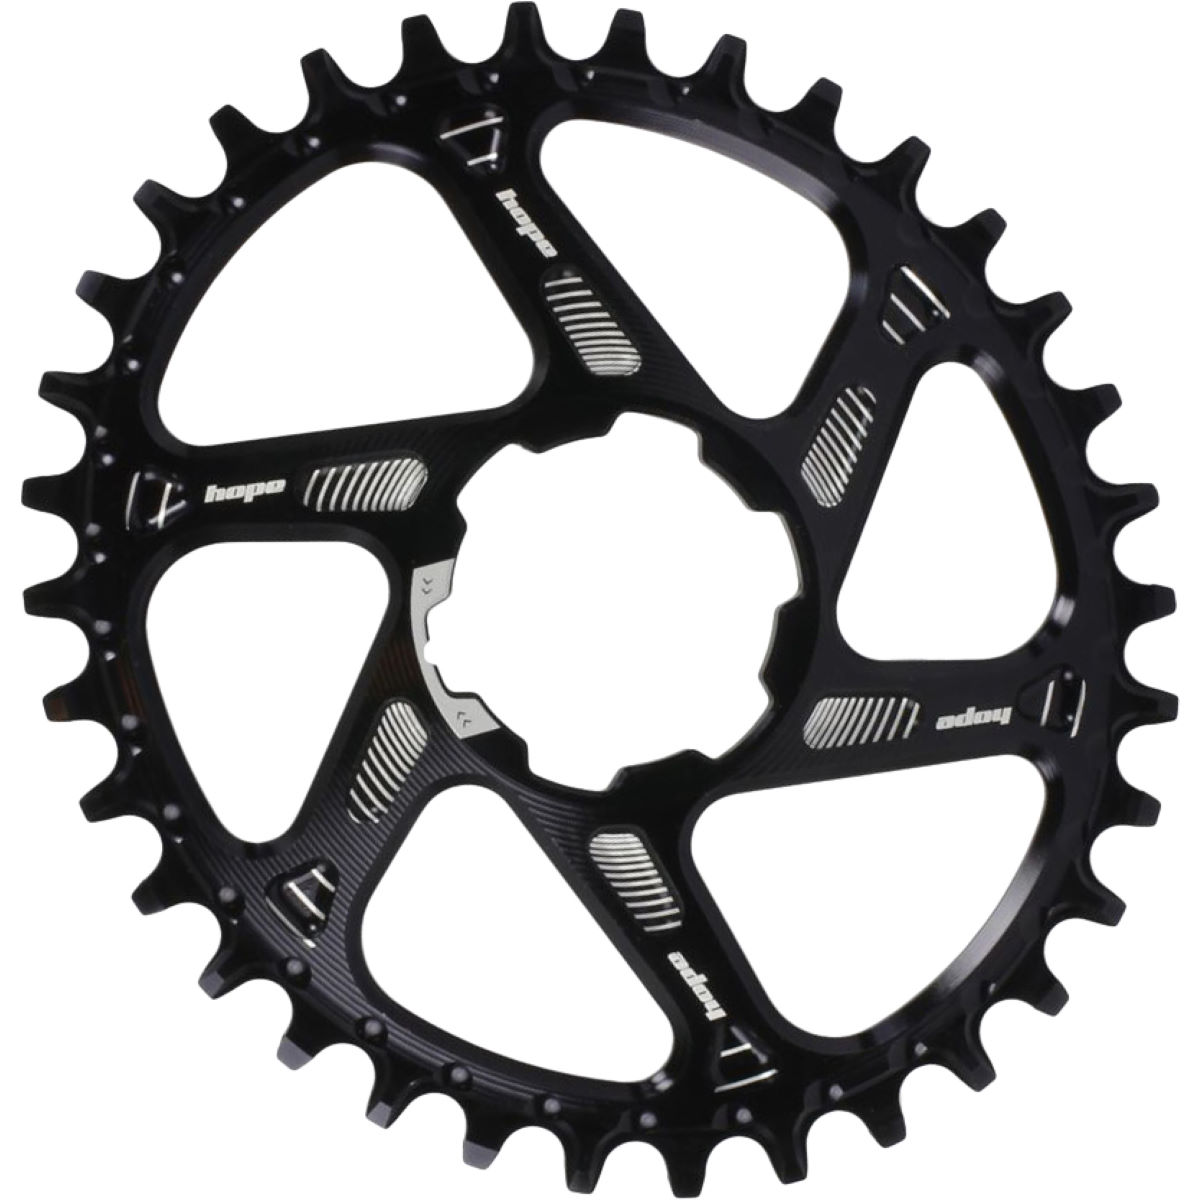 Hope Hope Oval Spiderless Retainer Ring - Boost   Chain Rings